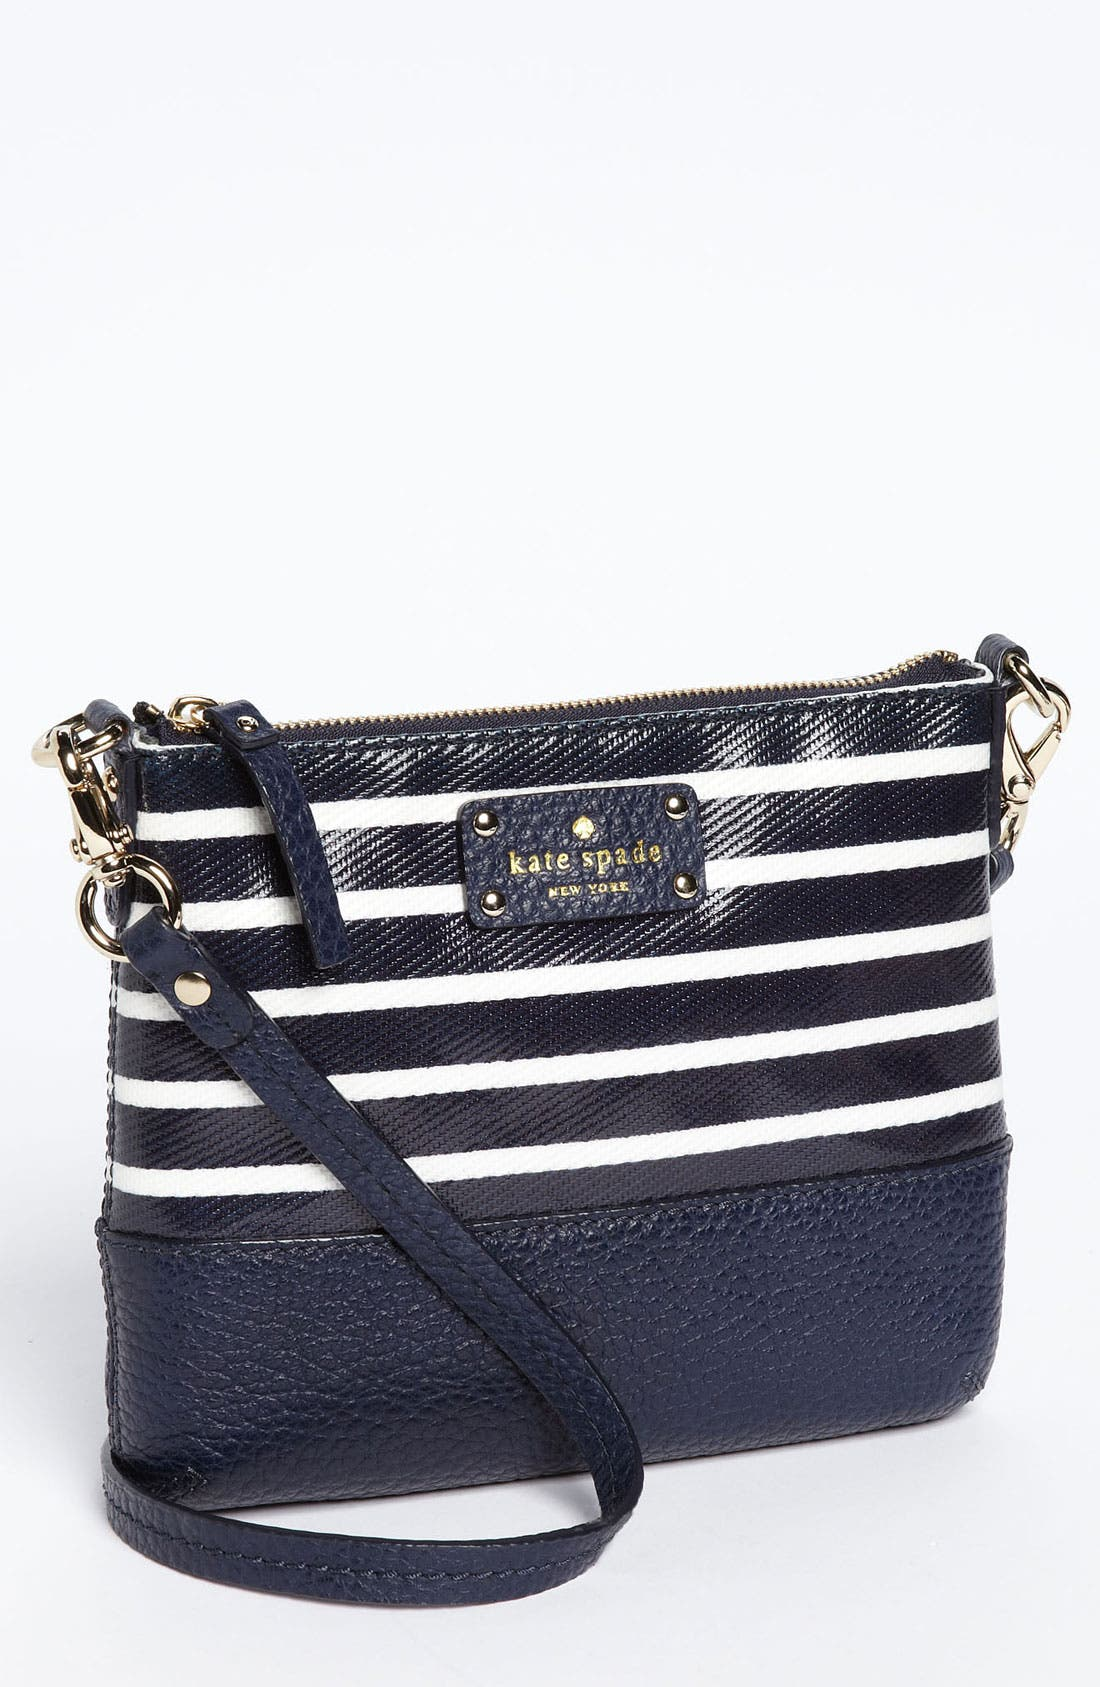 Main Image - kate spade new york 'grove court - tenley' crossbody bag